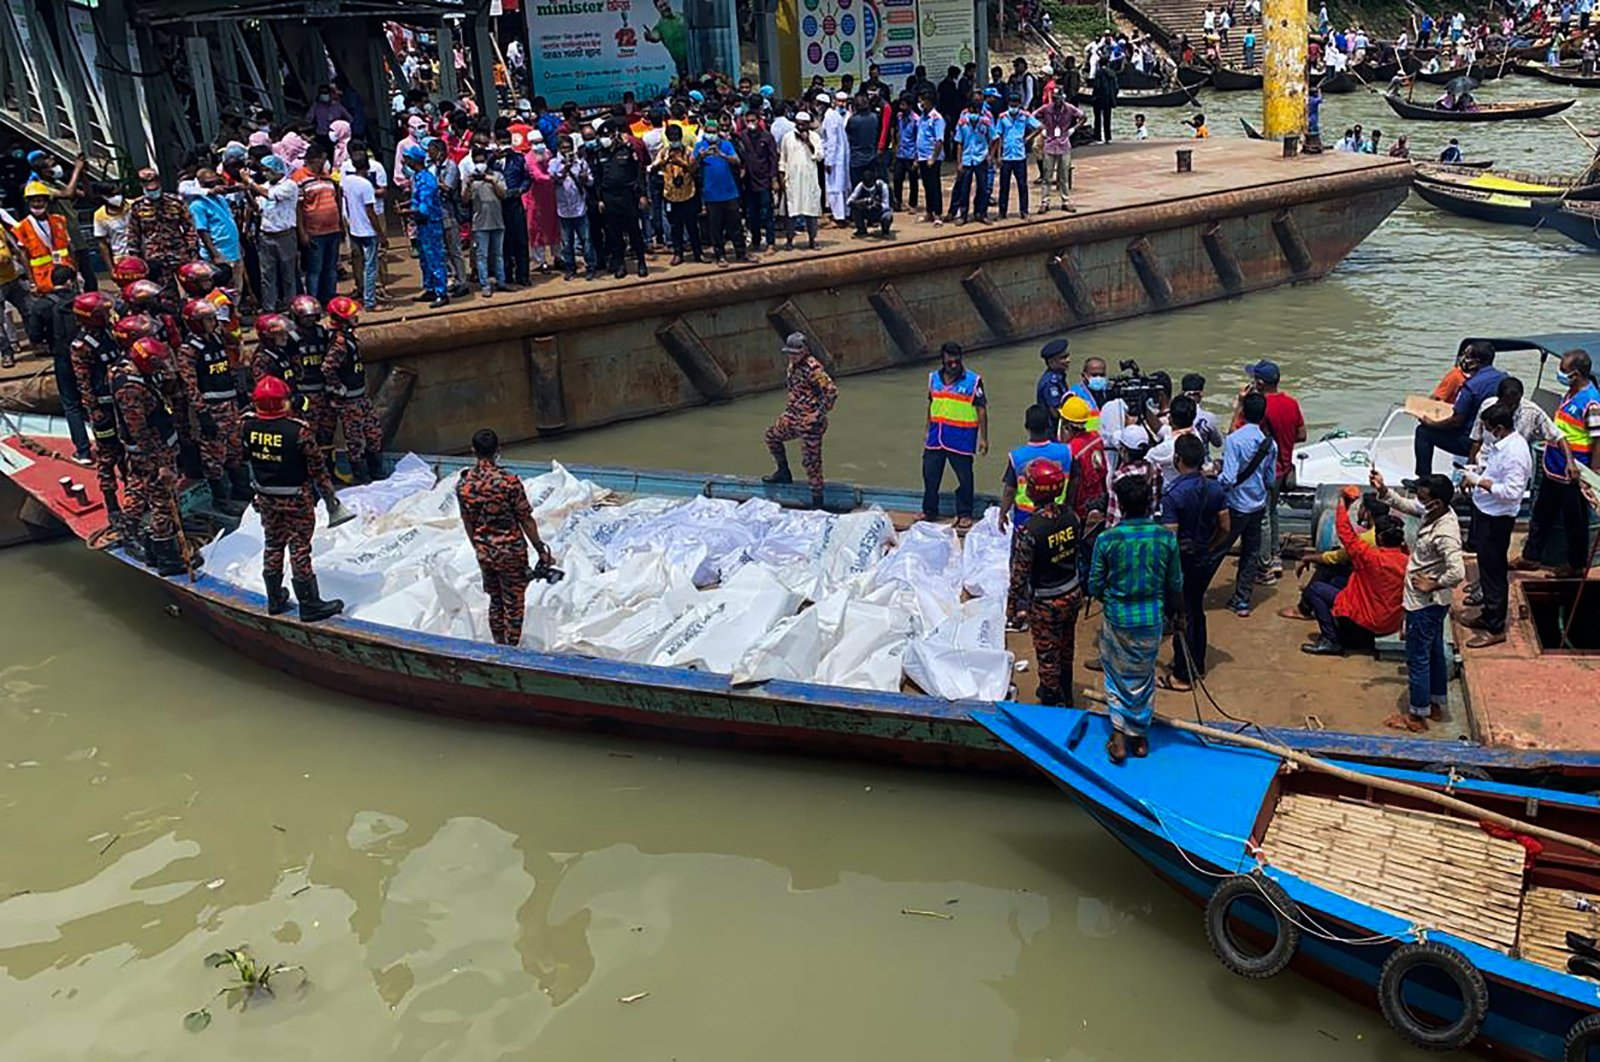 Rescue workers bring the bodies of victims after a ferry capsized at the Sadarghat ferry terminal in Dhaka, June 29, 2020. (AFP Photo)